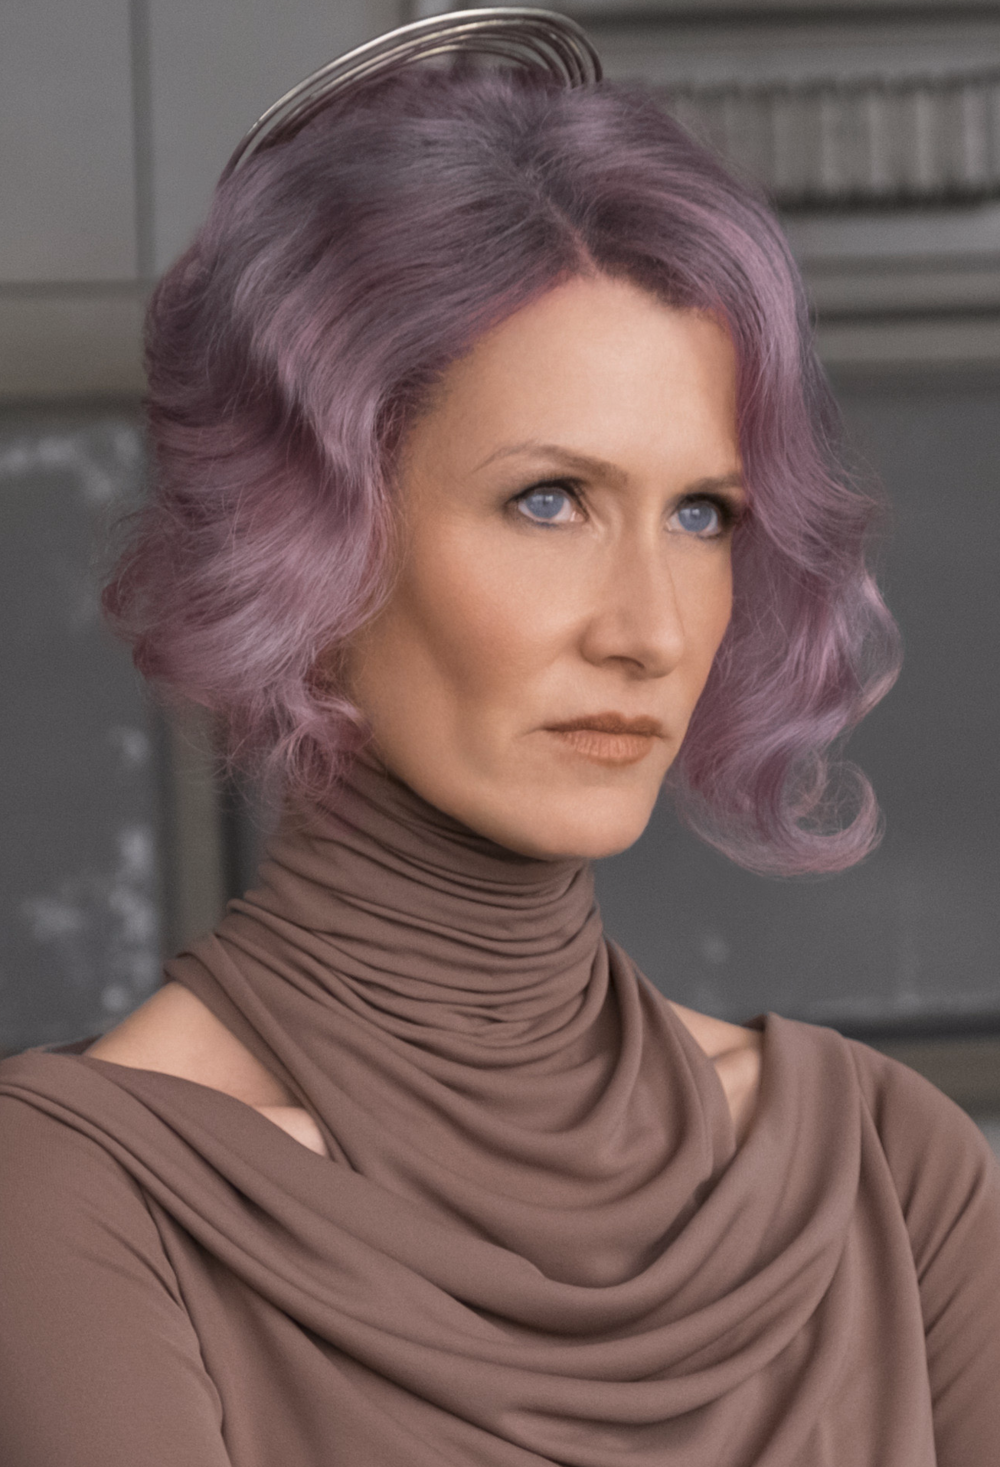 This is a copyrighted promotional image of Amilyn Holdo. It is believed that the copyright holder has granted permission for use under the fair use provision of United States copyright law. Source: Goodman, Lizzy (November 13, 2017). Laura Dern Finally Gets to Be Complicated. Elle. Retrieved on November 14, 2017, via Wookieepedia